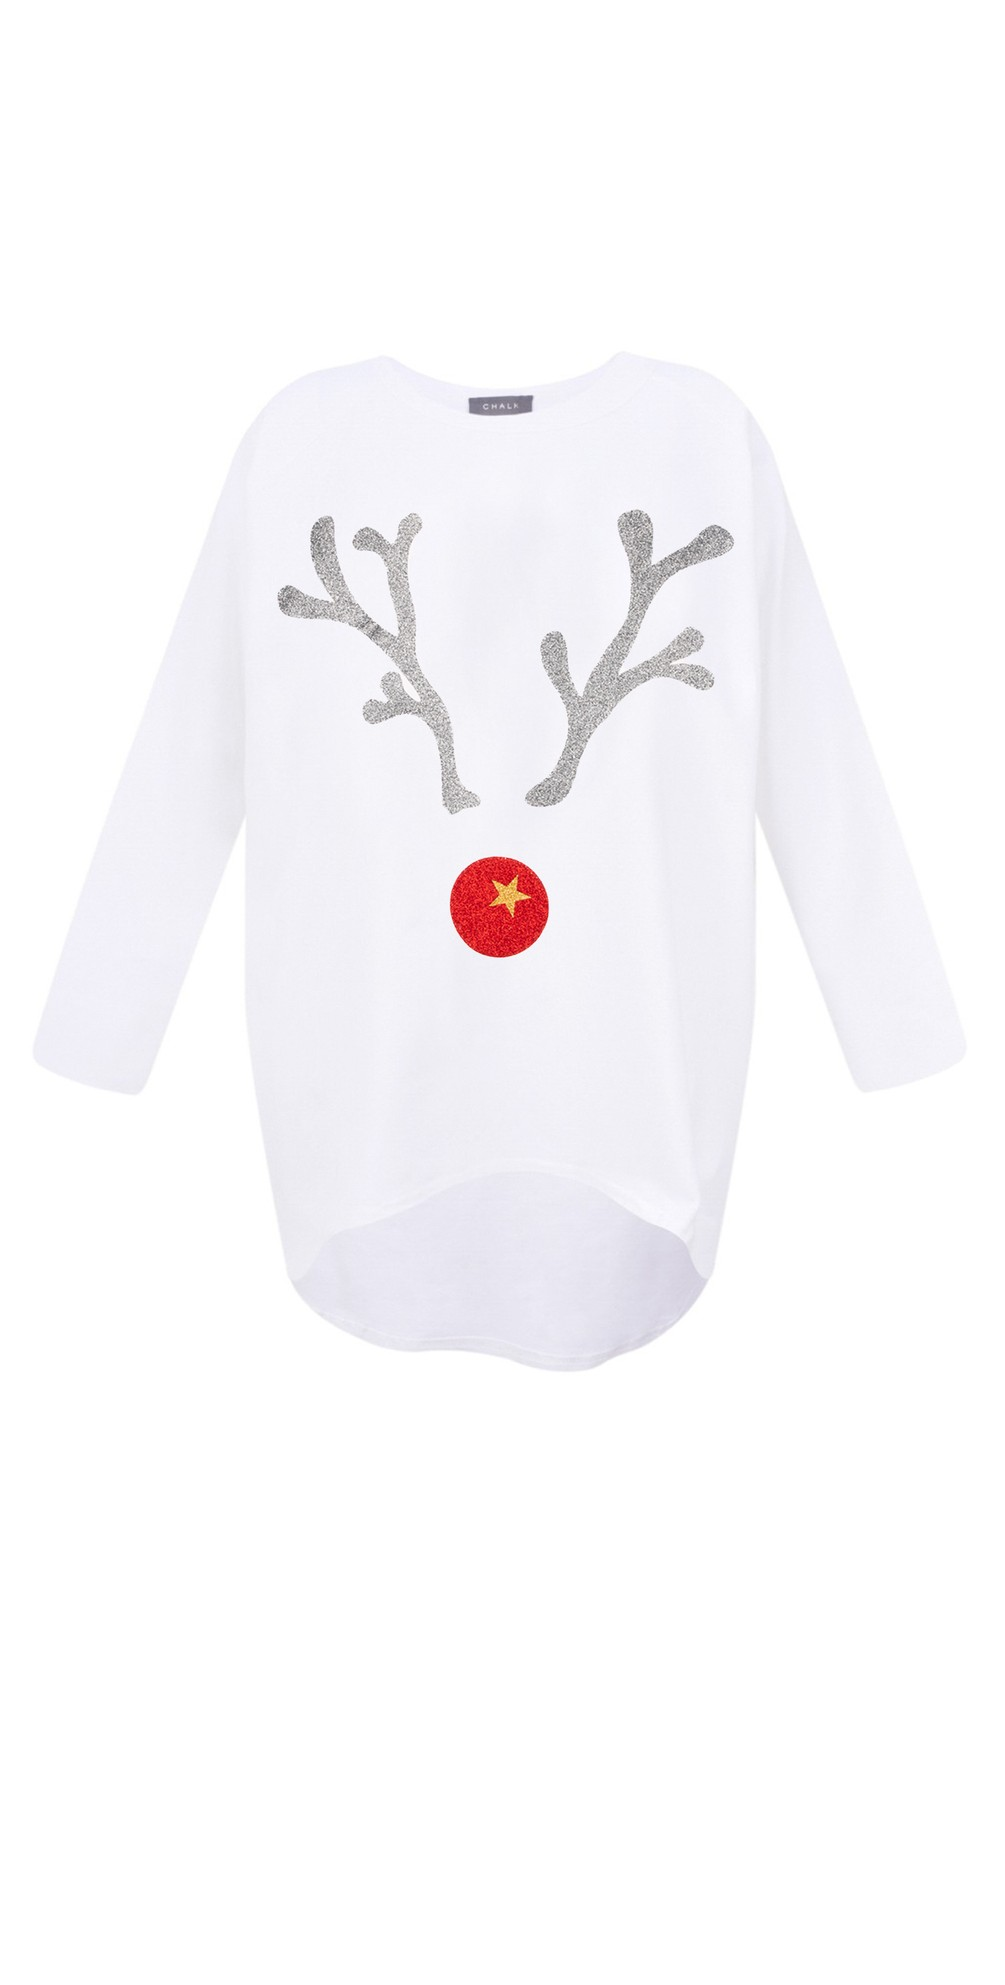 Robyn Giant Reindeer Top main image